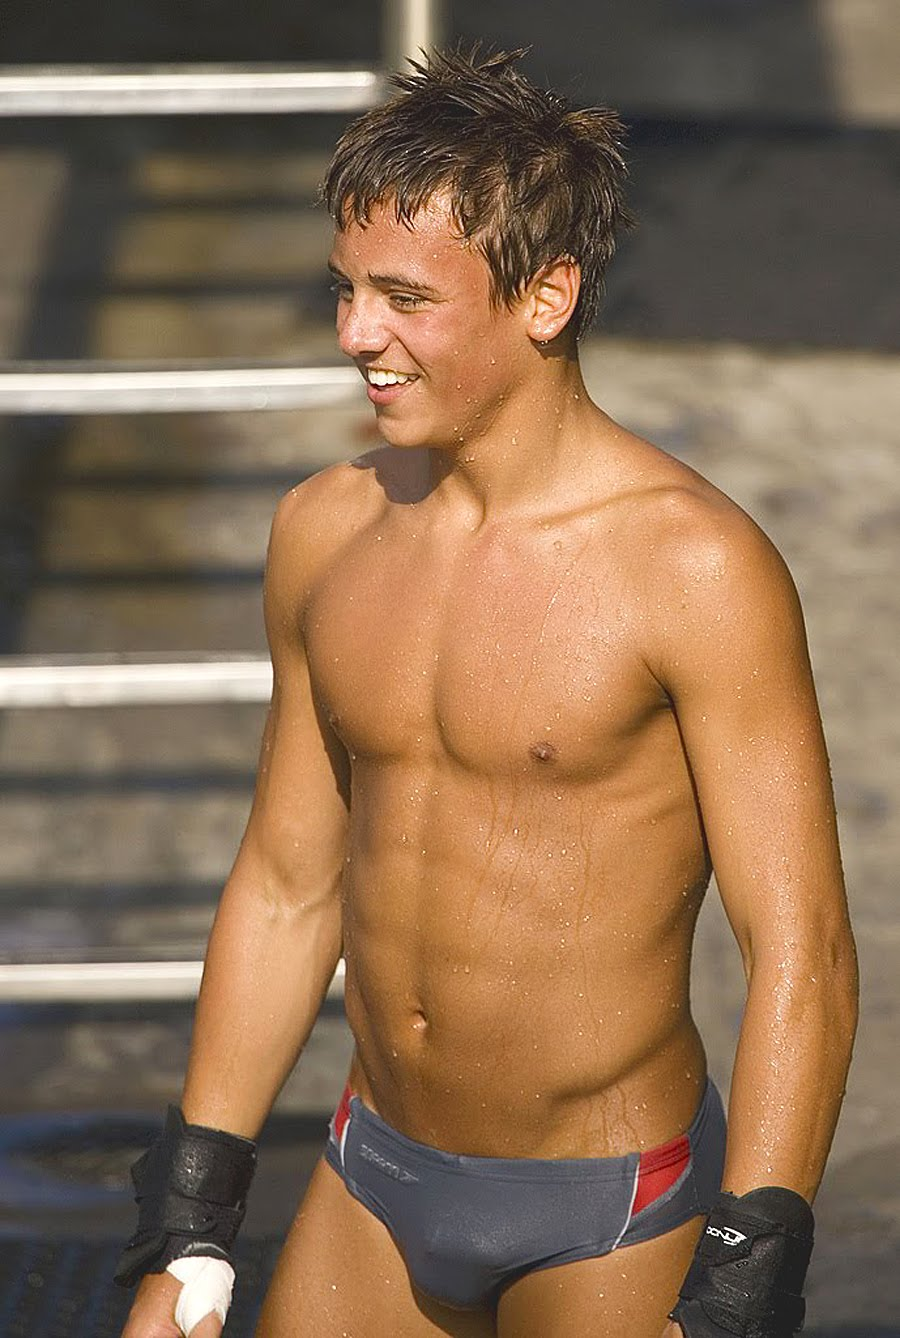 Tom Daley younger photo three at blogspot.com